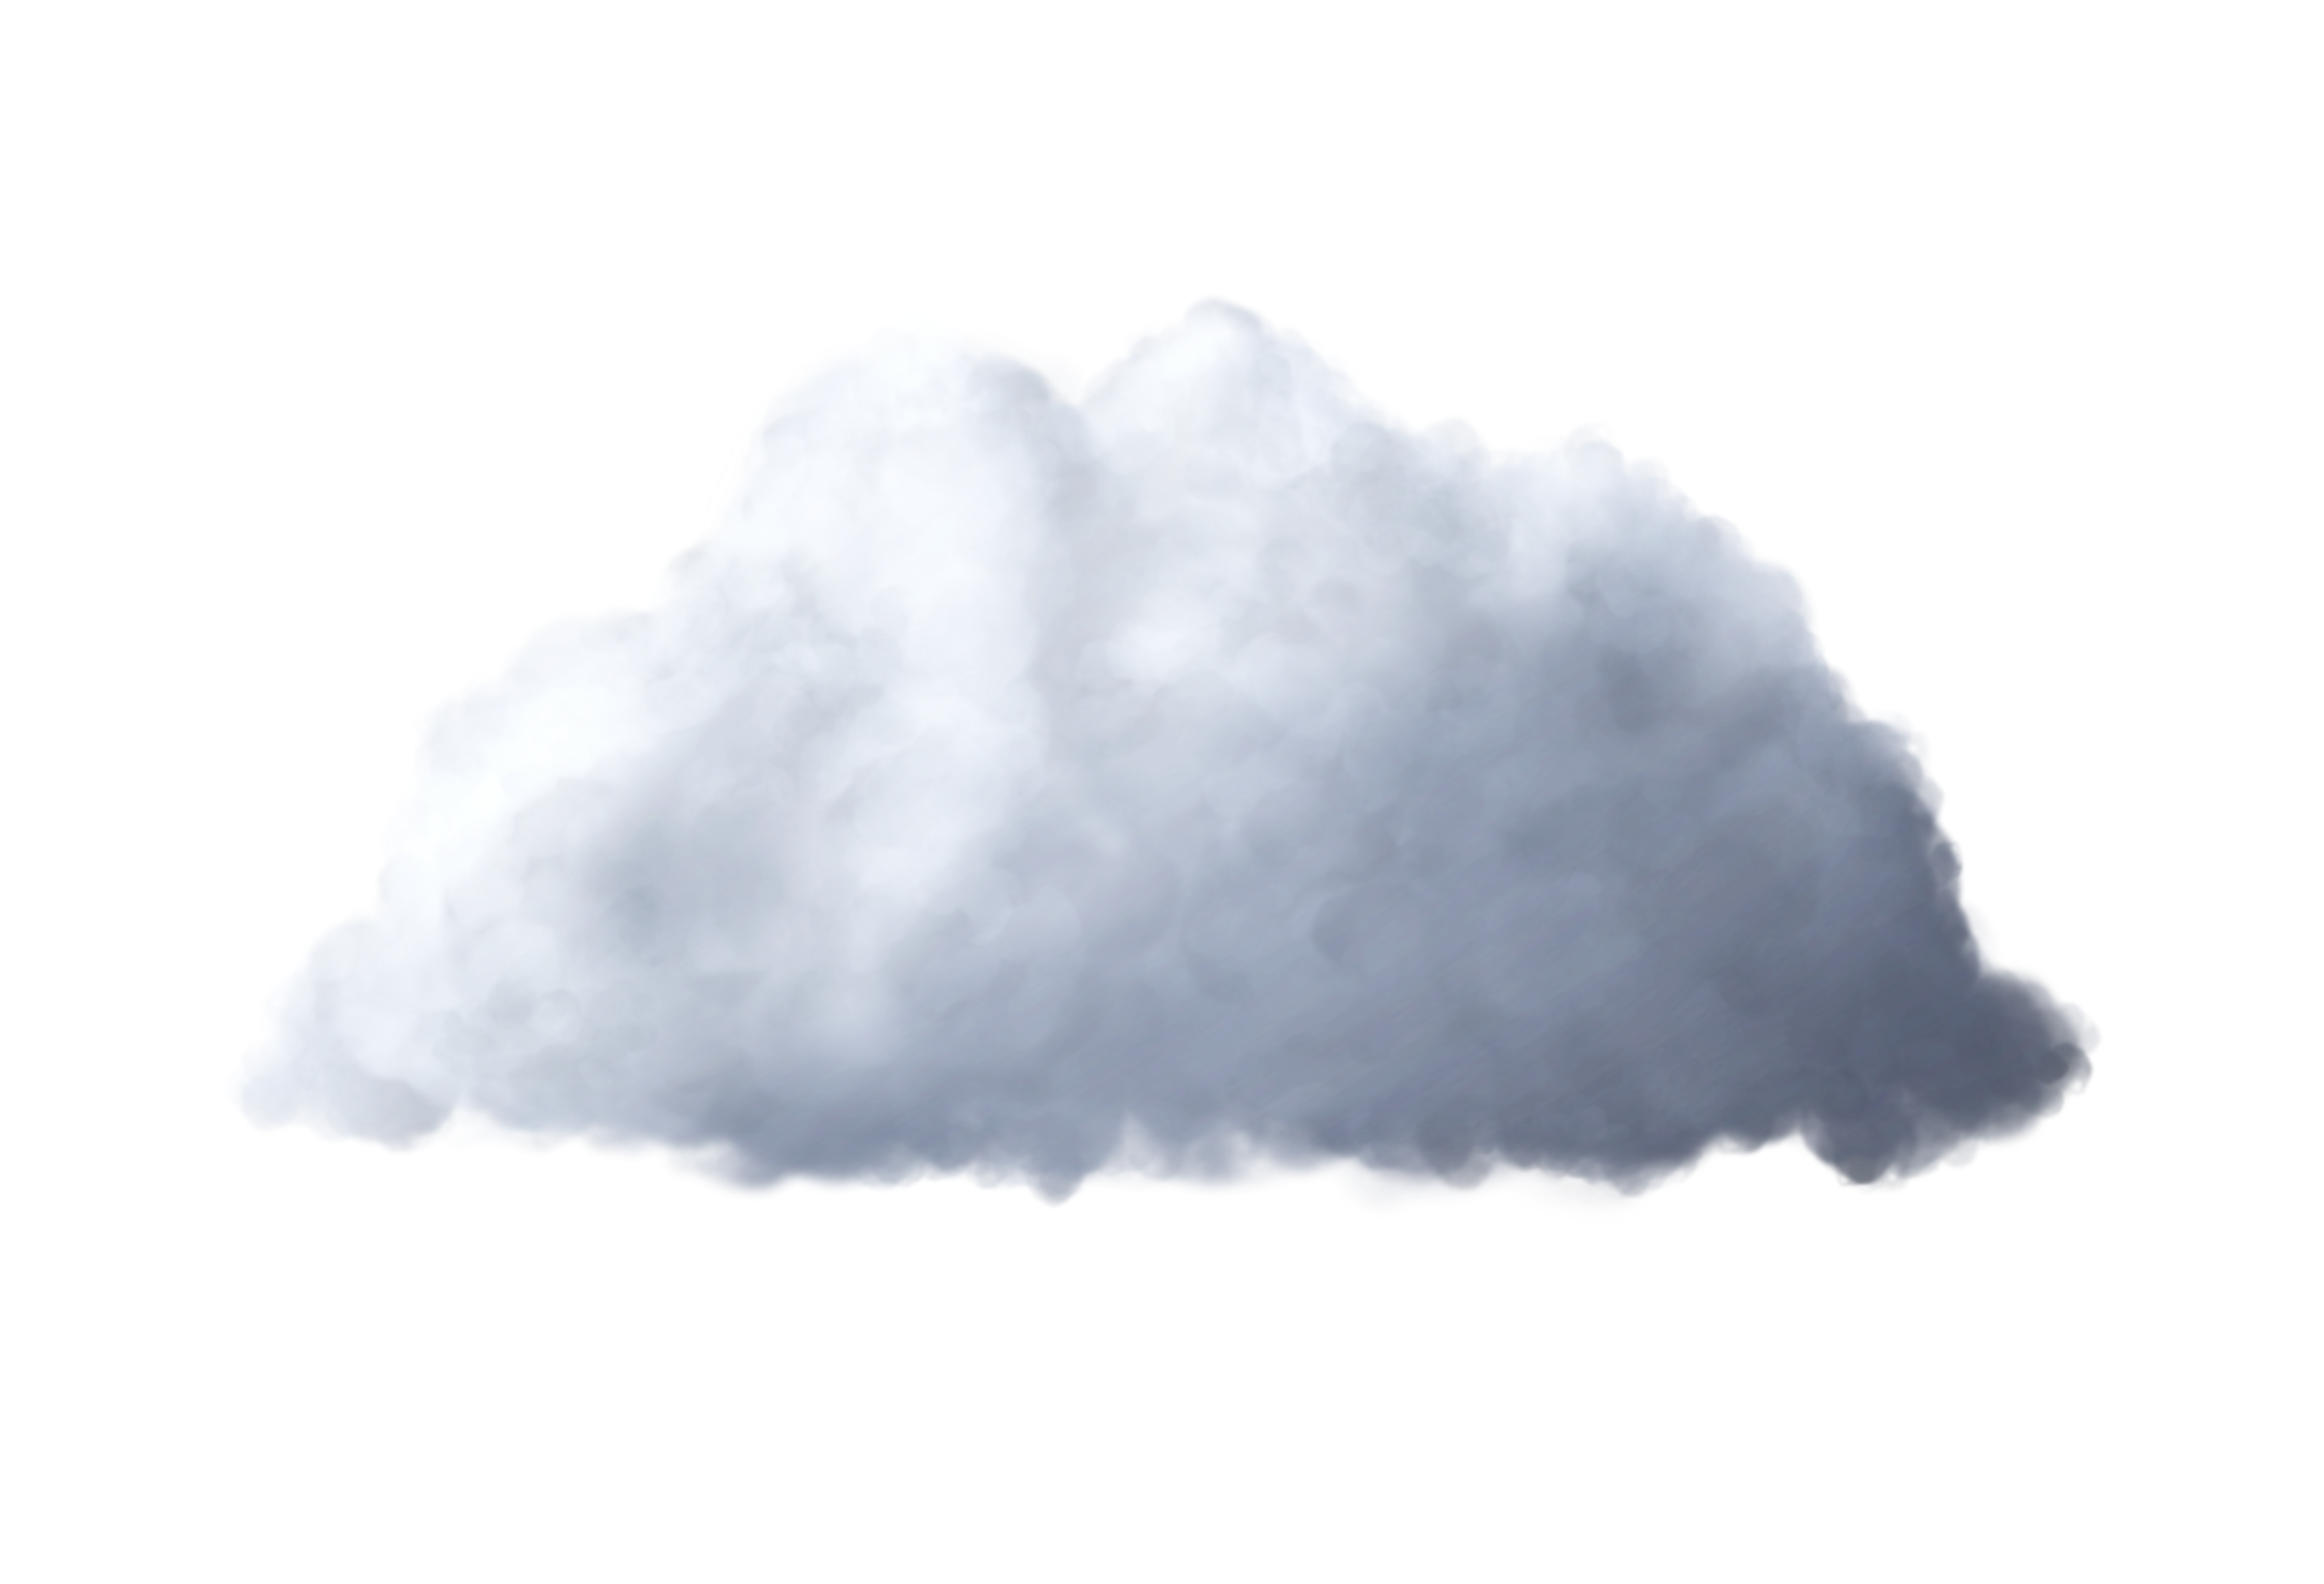 Cloud png images. White image purepng free